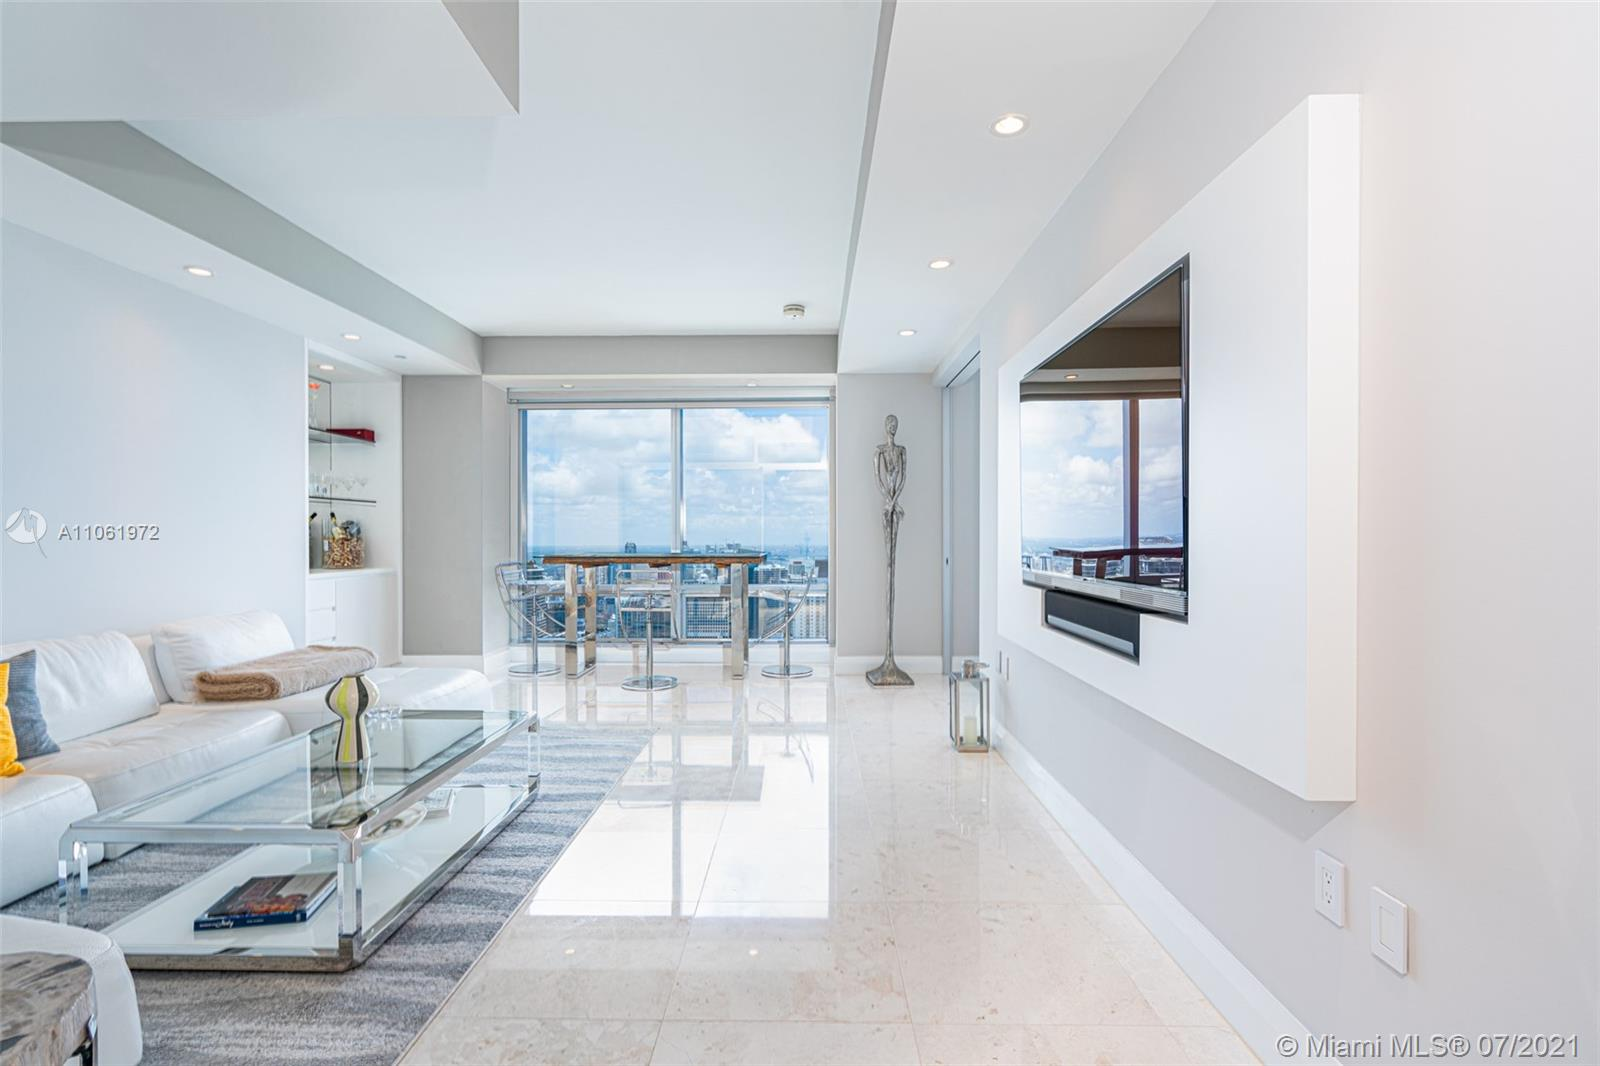 Spectacular 1 bedroom 1/5 Bathroom Pent House Residence ; Totally redesign - Unique Layout . Offering Magnificent Bay  & city views.  Open floorplan ,  spacious kitchen and laundry area.   Walking Closets. 10ft Ceilings and Spacious Master bathroom , Walking-IN Shower .   Marble floors through out , Roller shades & Blackouts.  A must see !!!